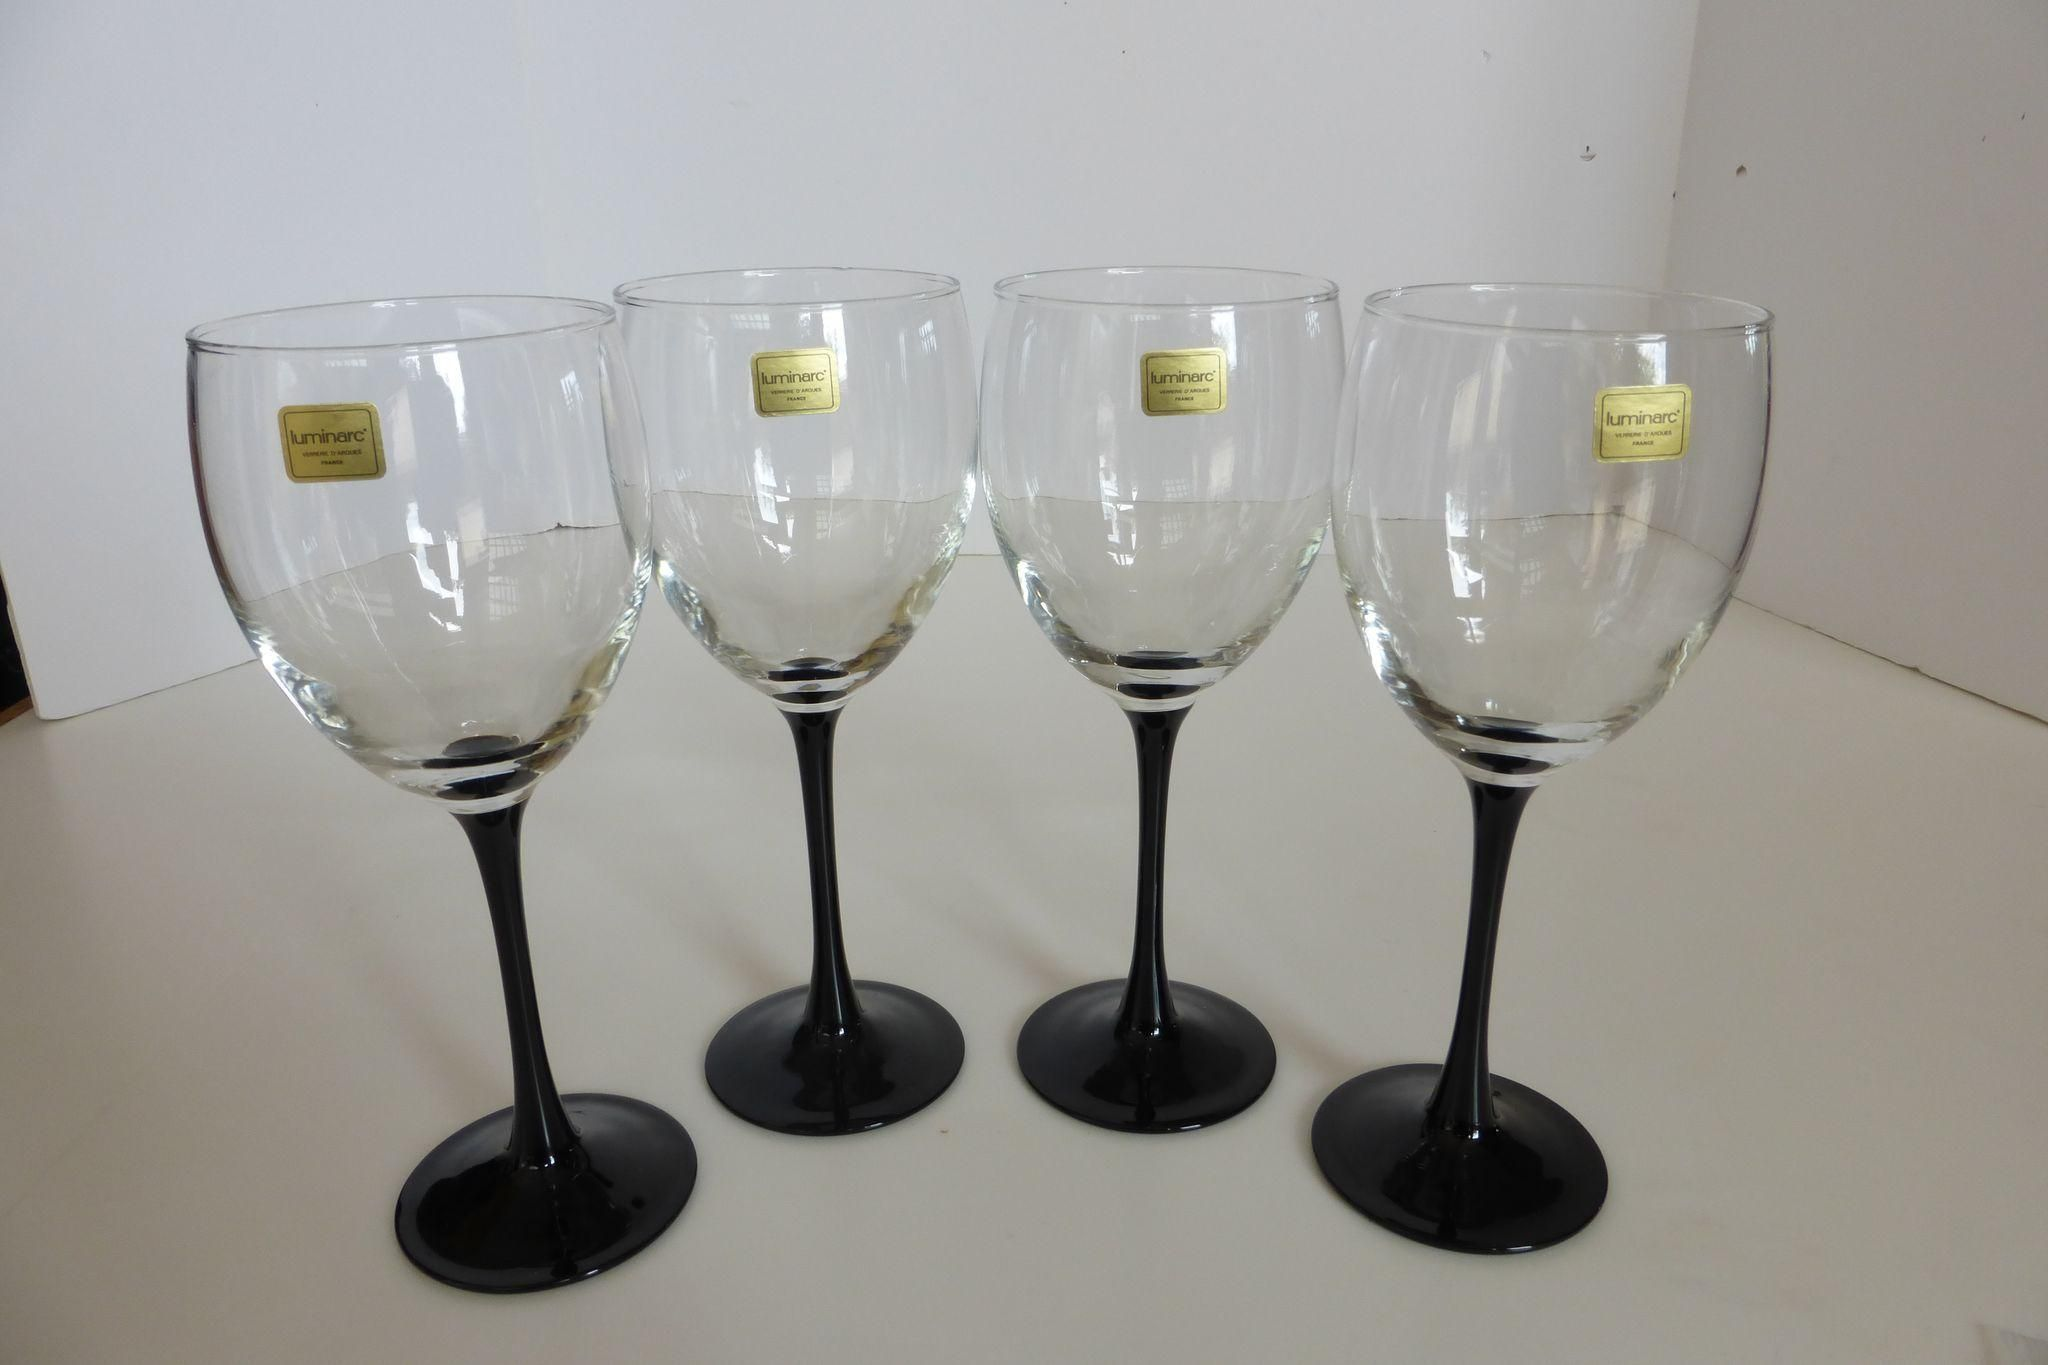 Crystal Stemware Wine Glasses Vintage Luminarc France Black Stem Crystal Wine Glasses